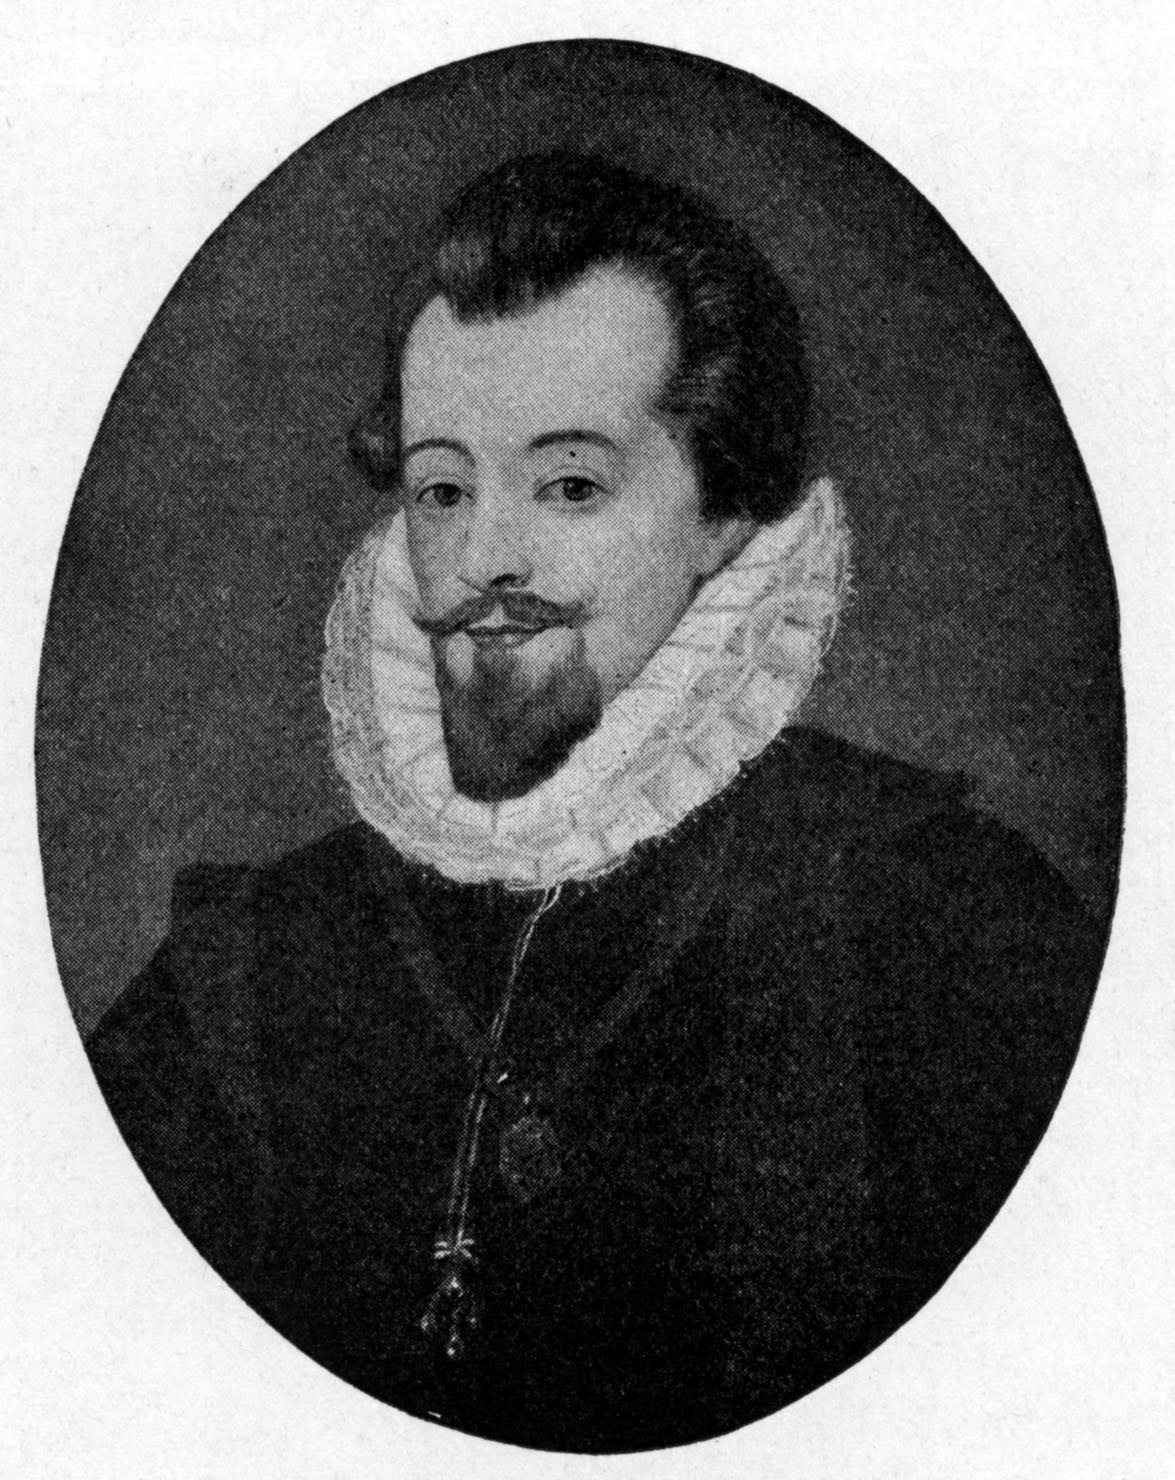 Robert Cecil, 1st Earl of Salisbury Robert Cecil, 1st Earl of Salisbury: Statesman, spymaster and minister to Queen Elizabeth I and King James I, 1 June 1563 – 24 May 1612.  (Photo by Culture Club/Getty Images)